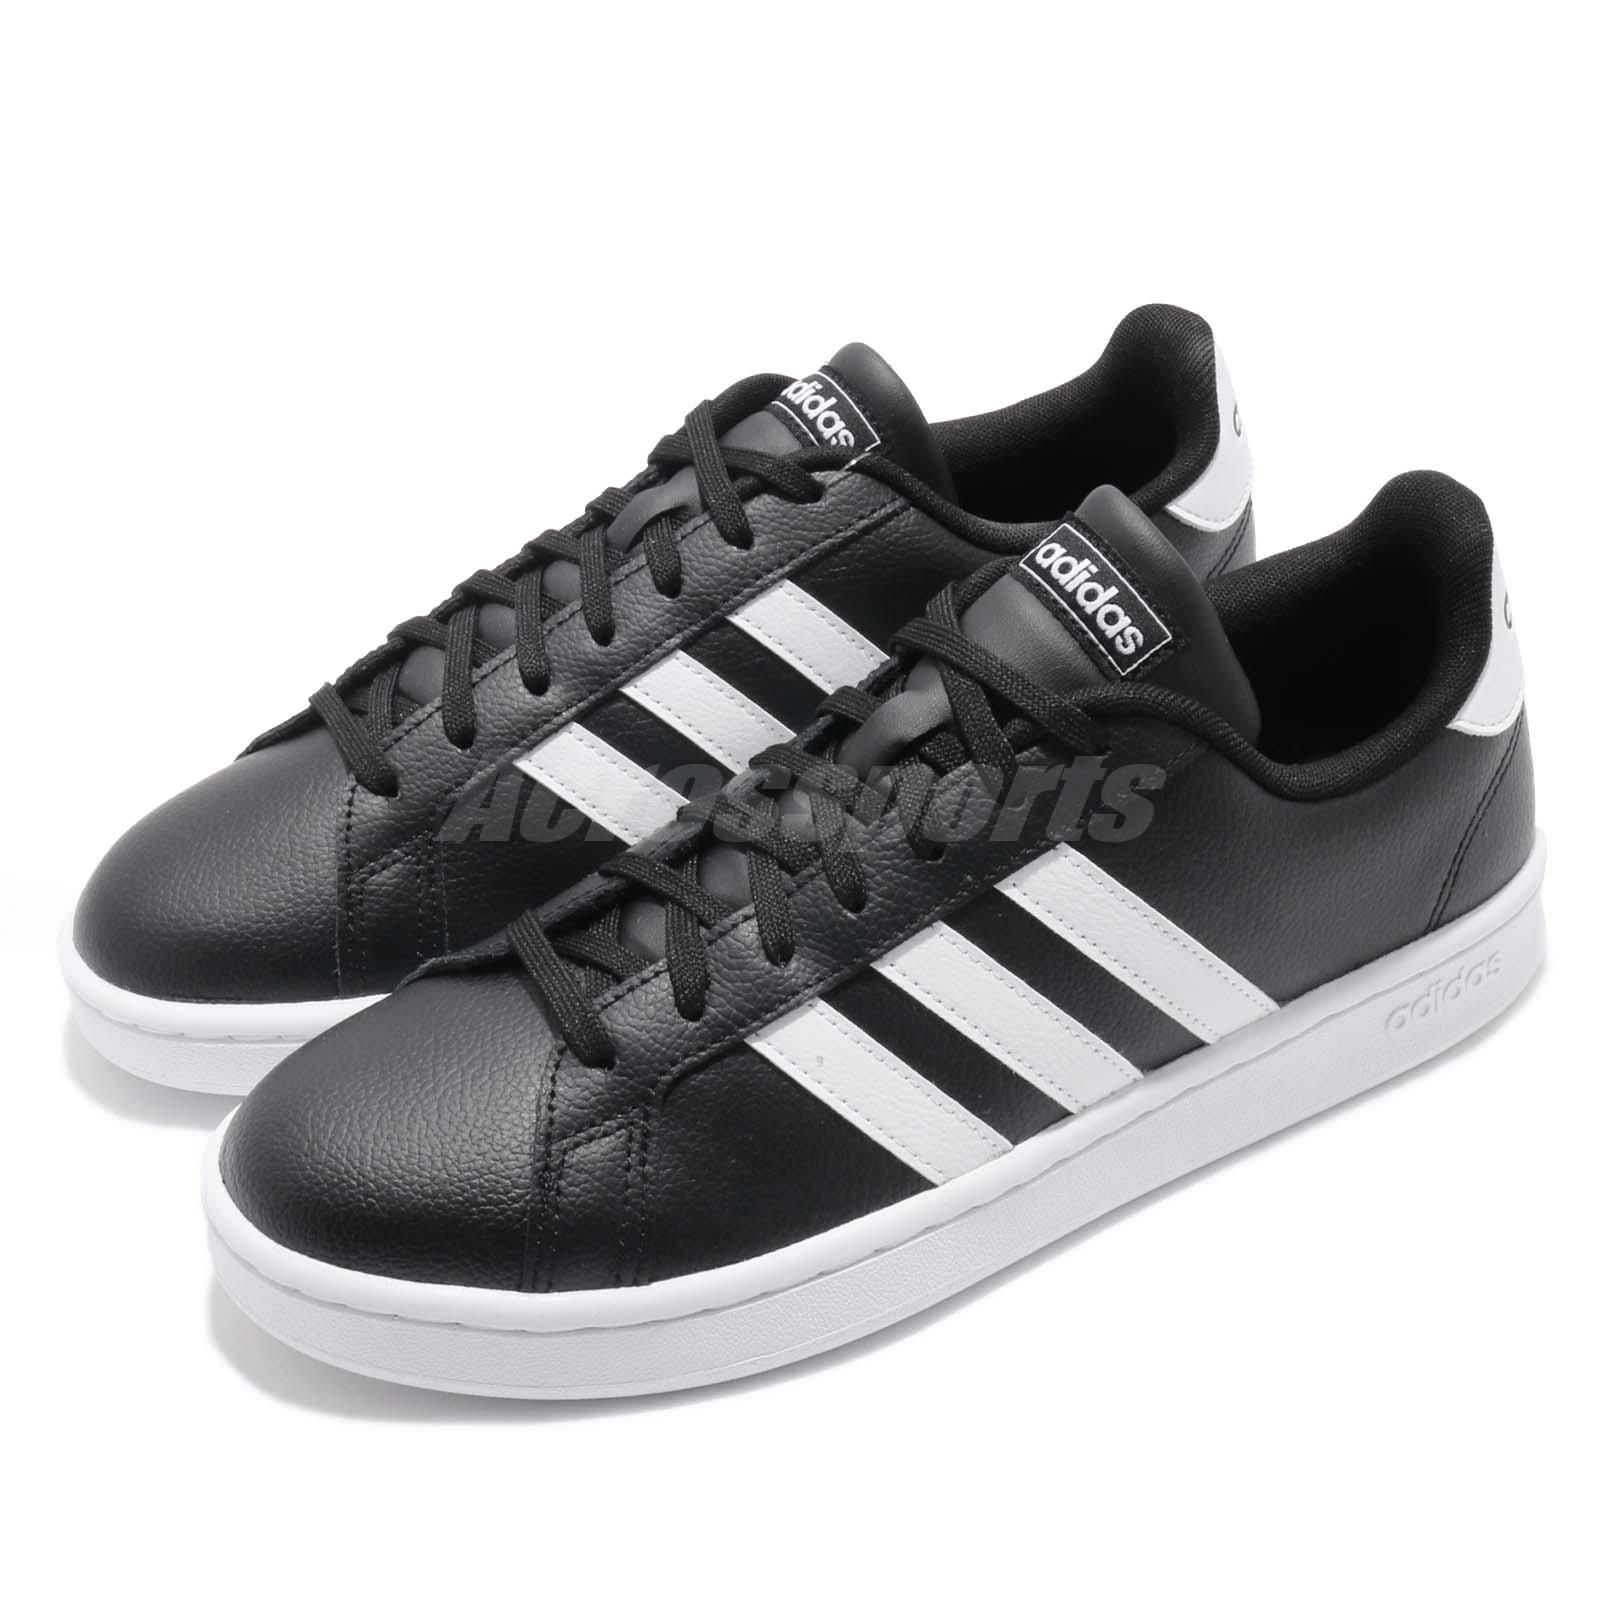 Details about adidas Grand Court Black White Men Classic Casual Lifestyle Shoes Sneaker F36393